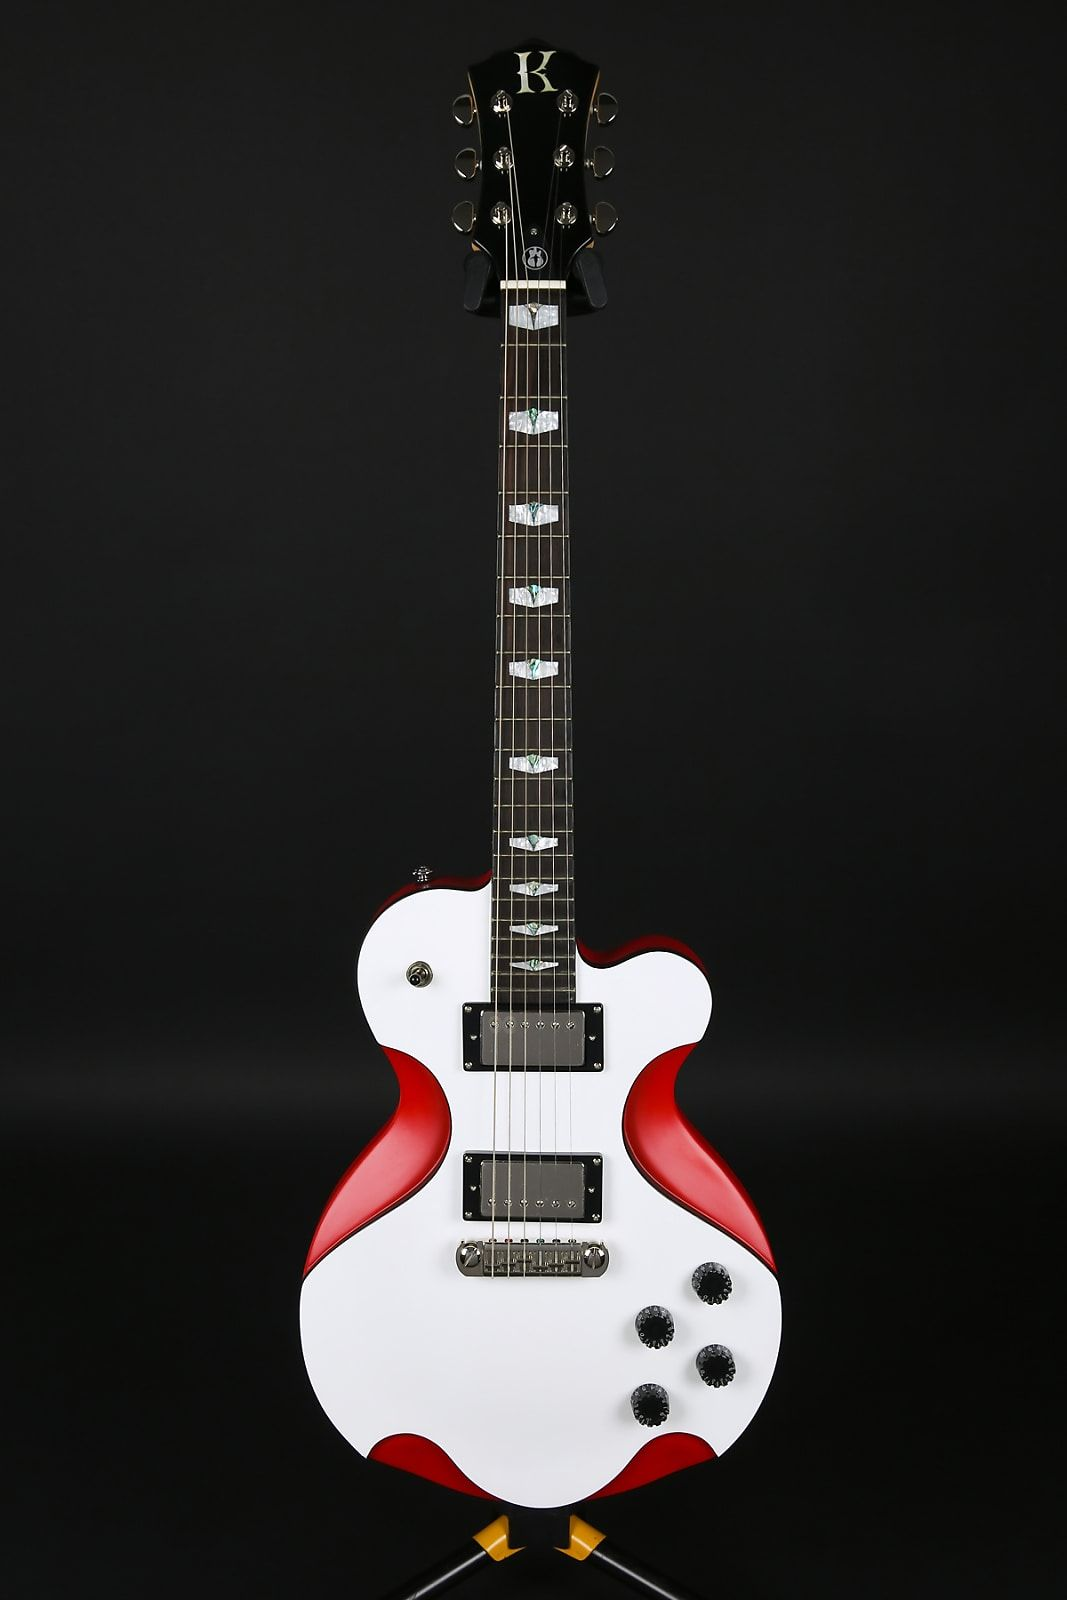 kraken janus supreme sport unique design electric guitar reverb eddie van halen in 2019. Black Bedroom Furniture Sets. Home Design Ideas